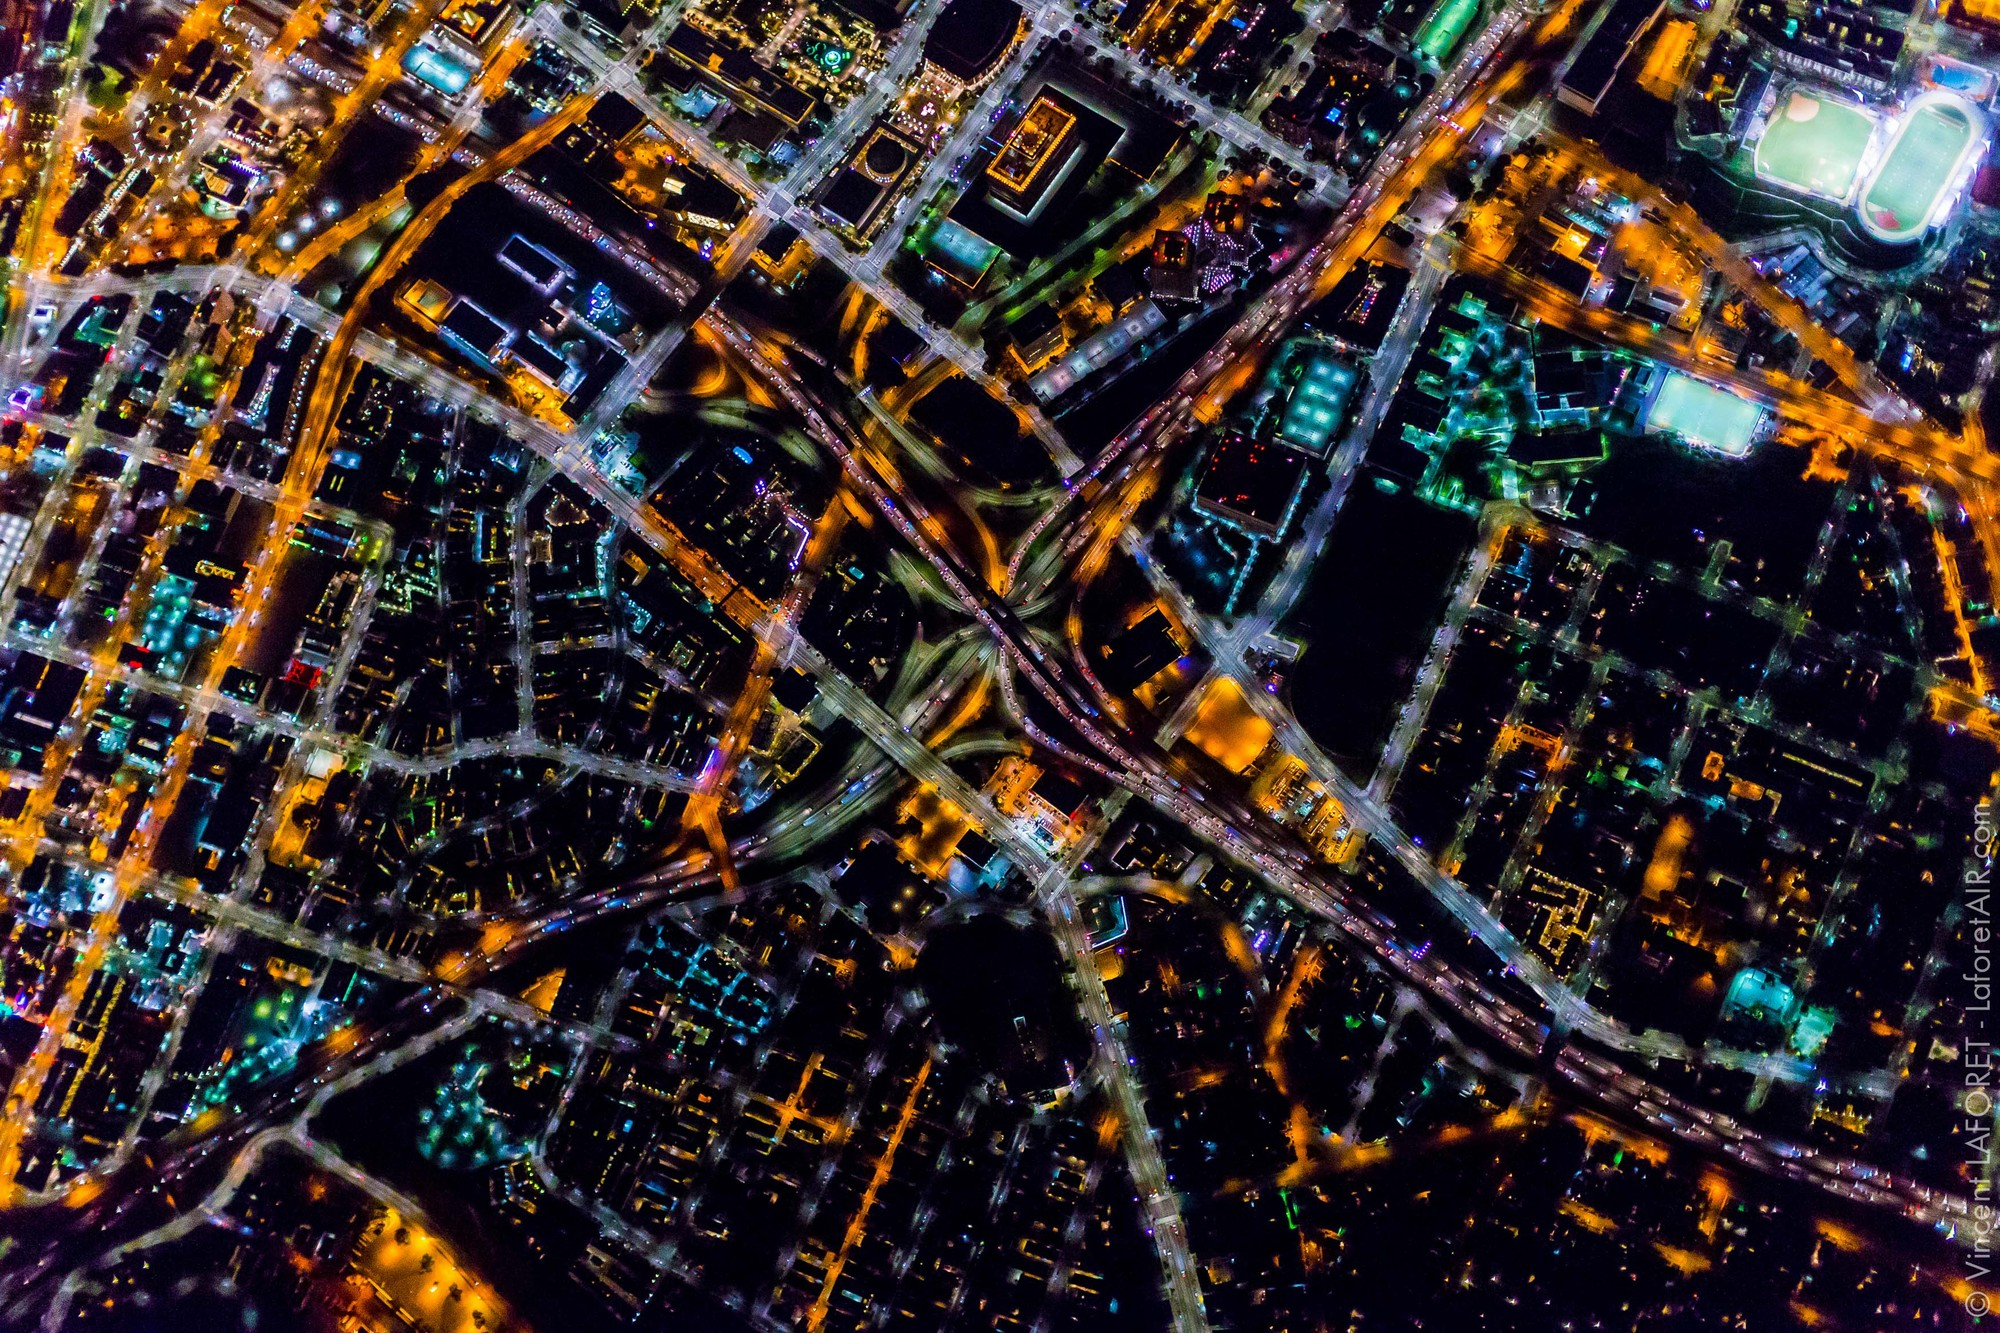 Vincent Laforet Photographs Los Angeles from 10,000 Feet, © Vincent Laforet